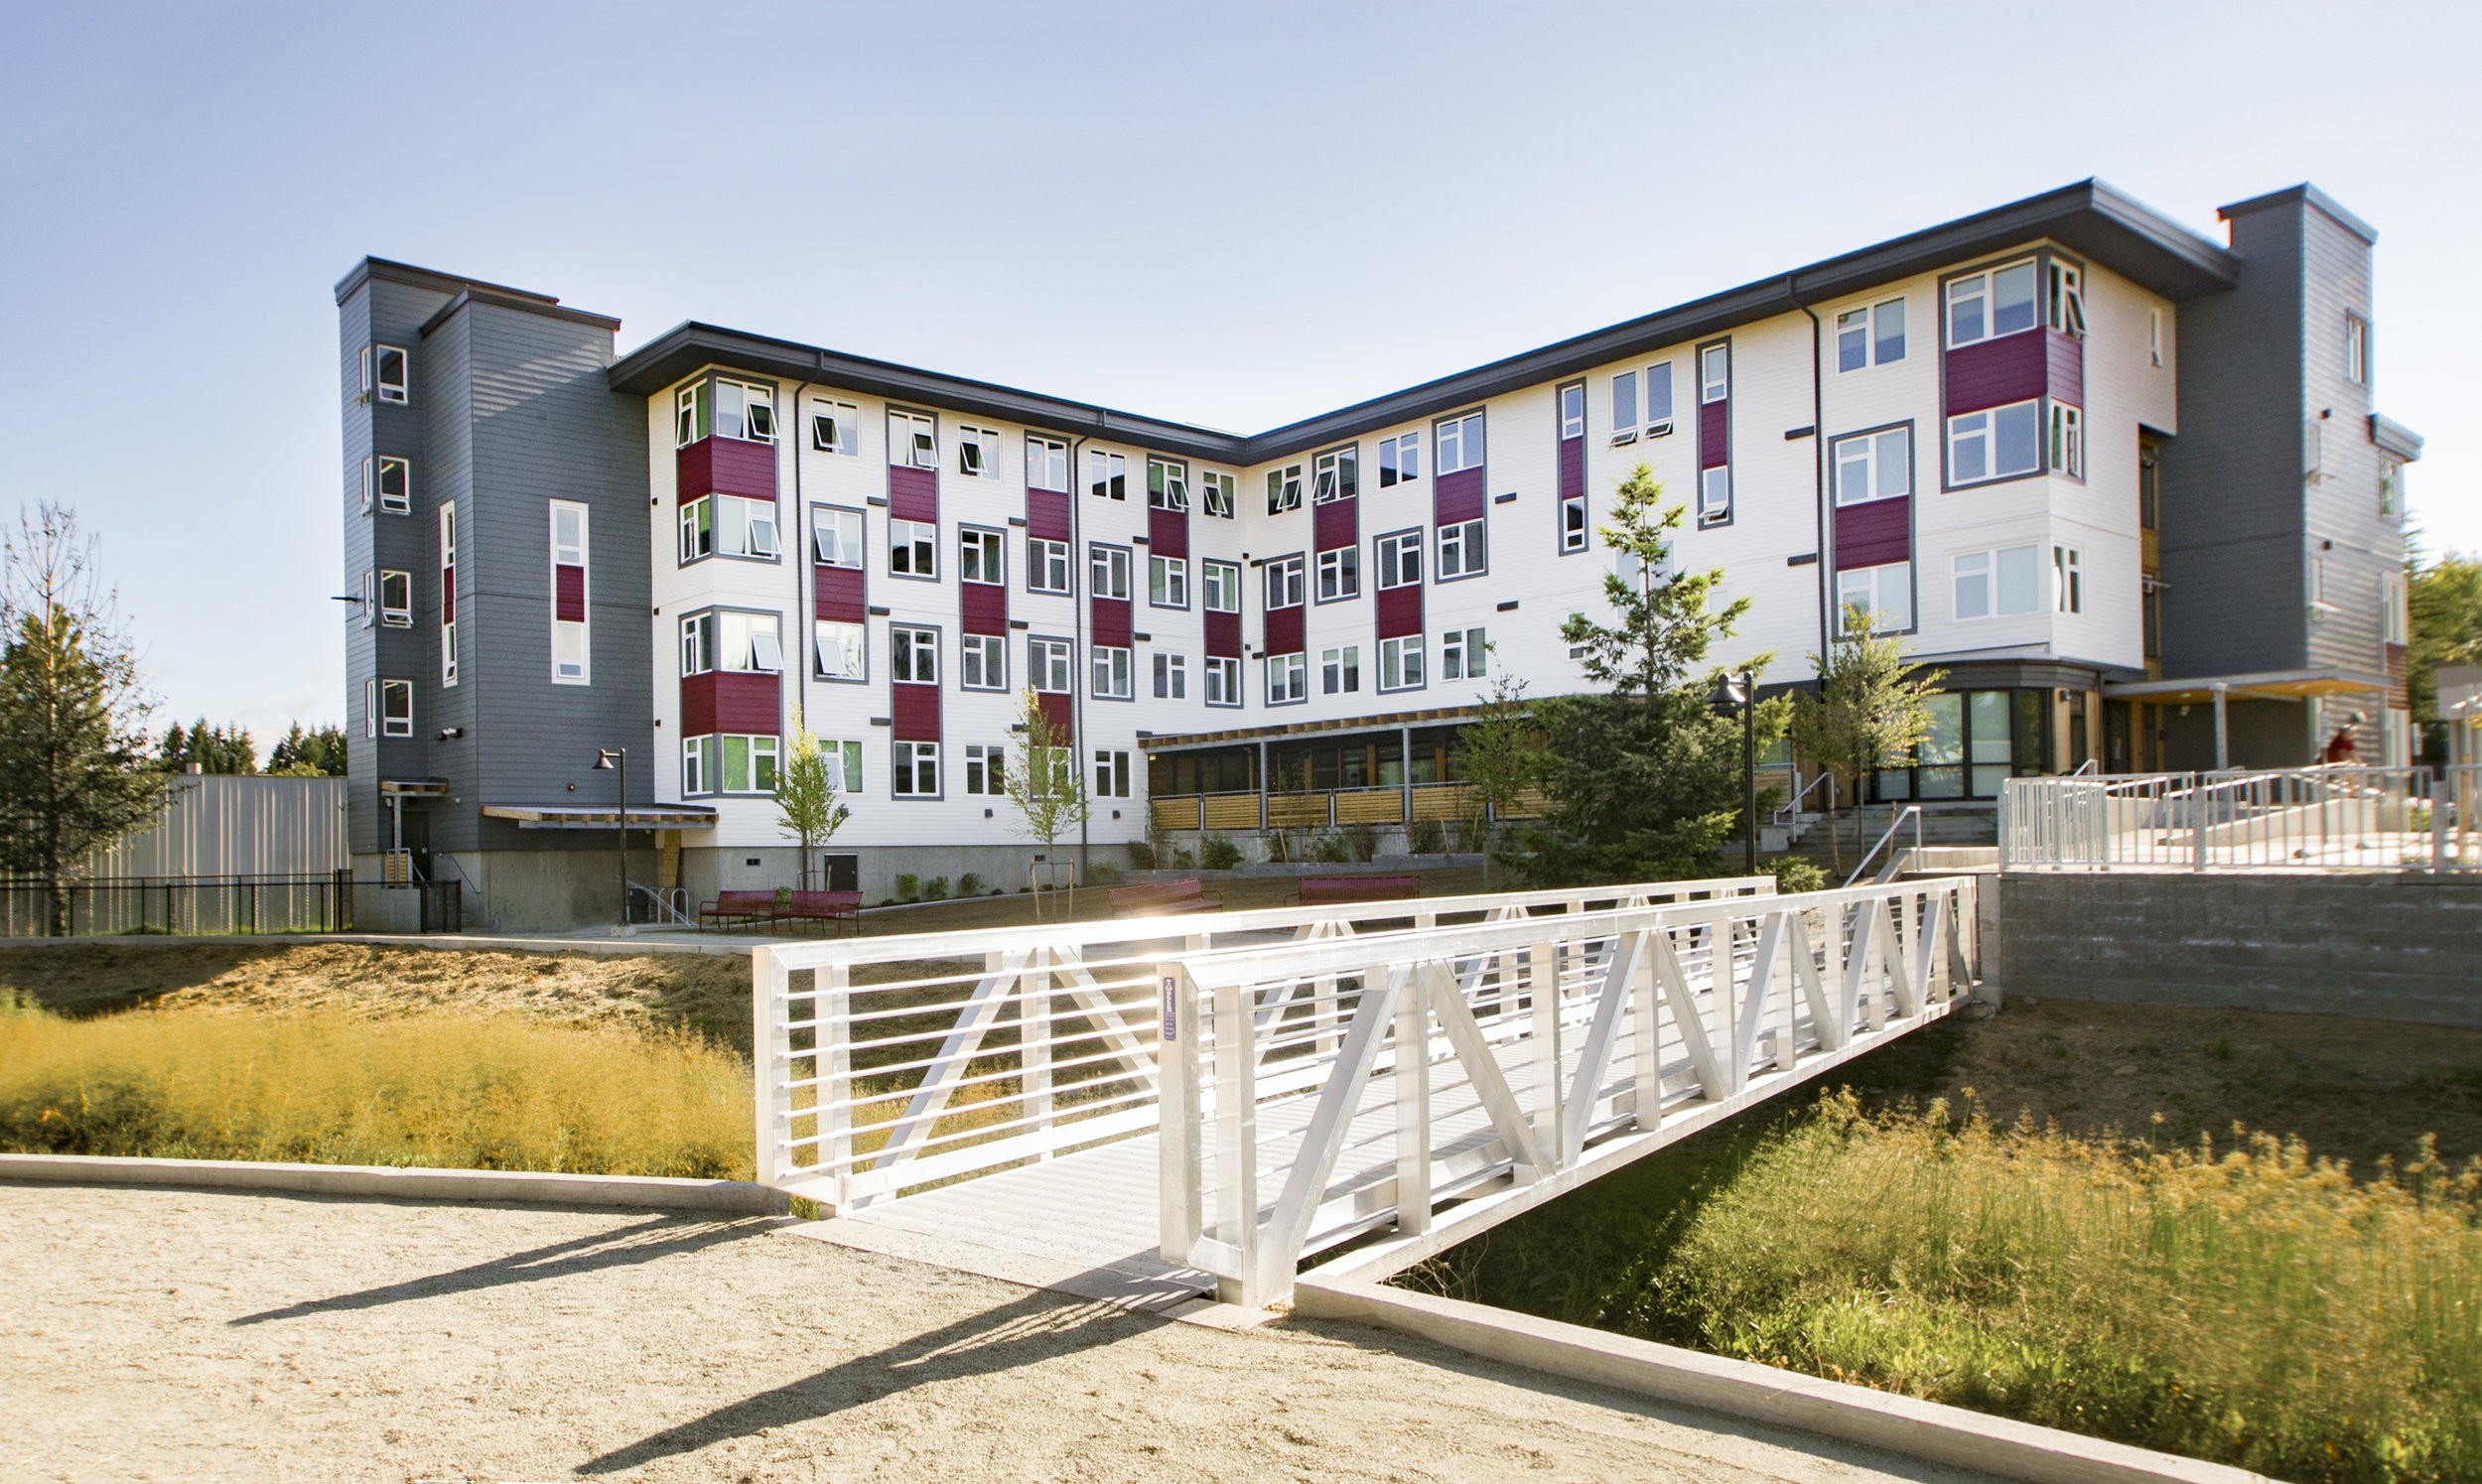 - Client: Catholic Community Services of Western Washington, Catholic Housing ServicesLocation: Olympia, WashingtonCompletion: 2017Project Size: 50 Studio Apartments + Common Areas + Outdoor Space